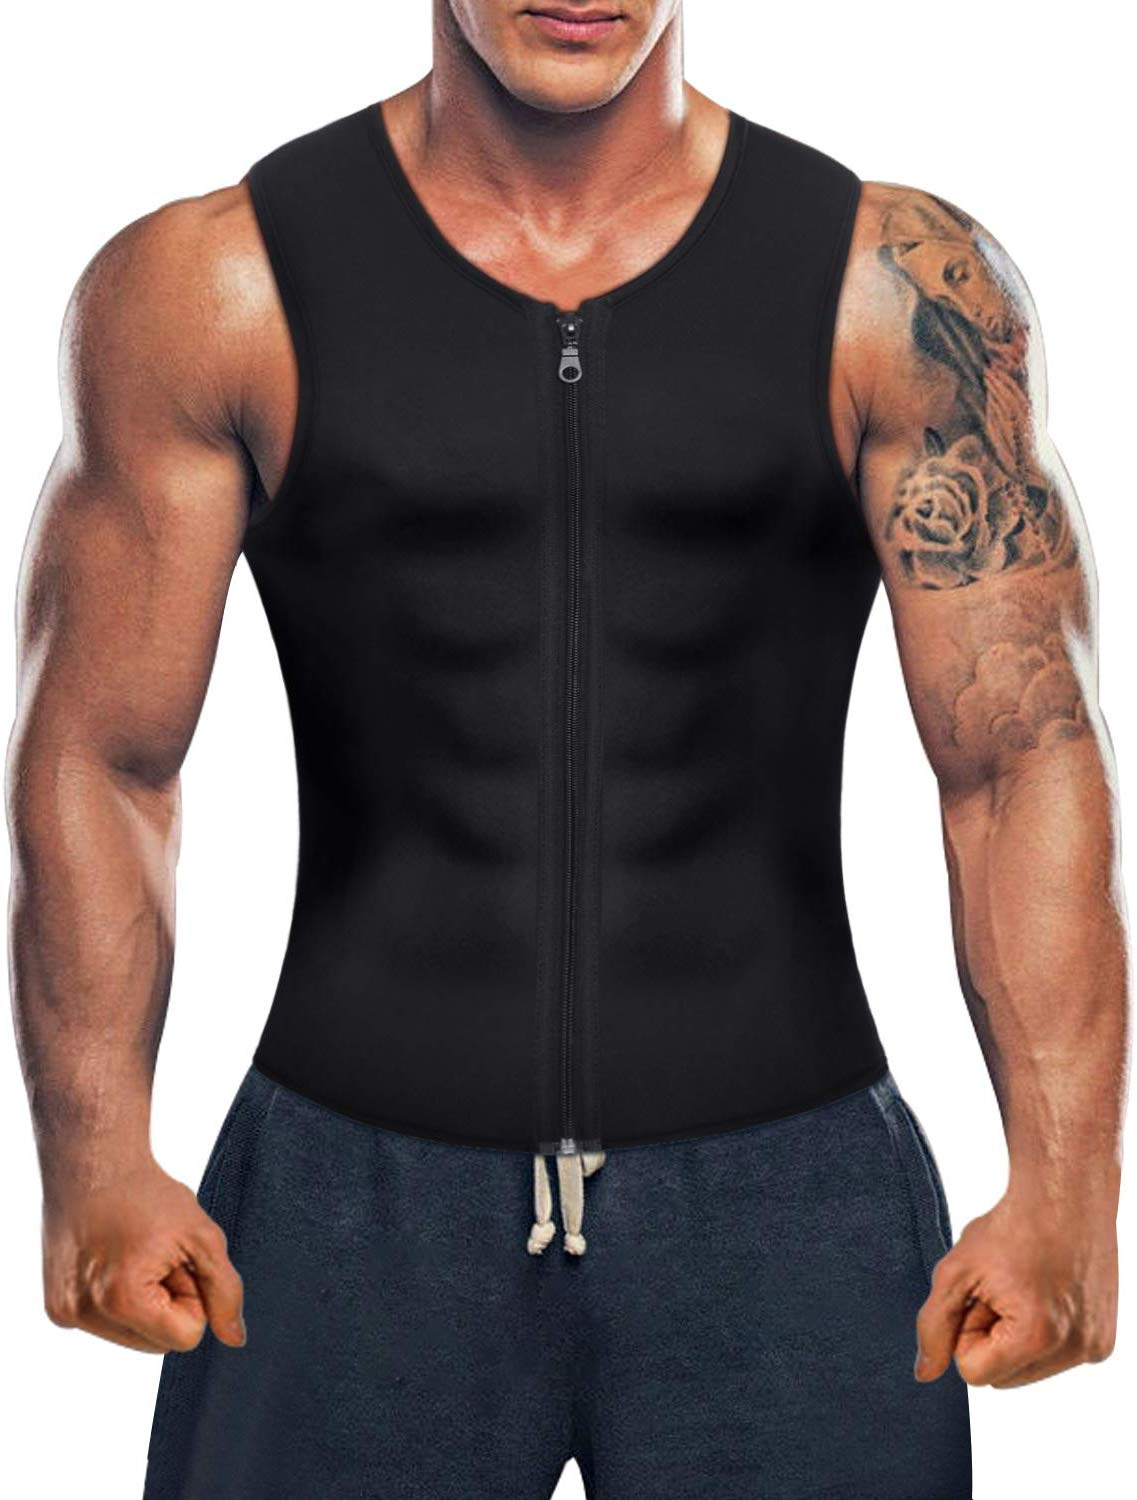 Men Hot Neoprene Sauna Suit Waist Trainer